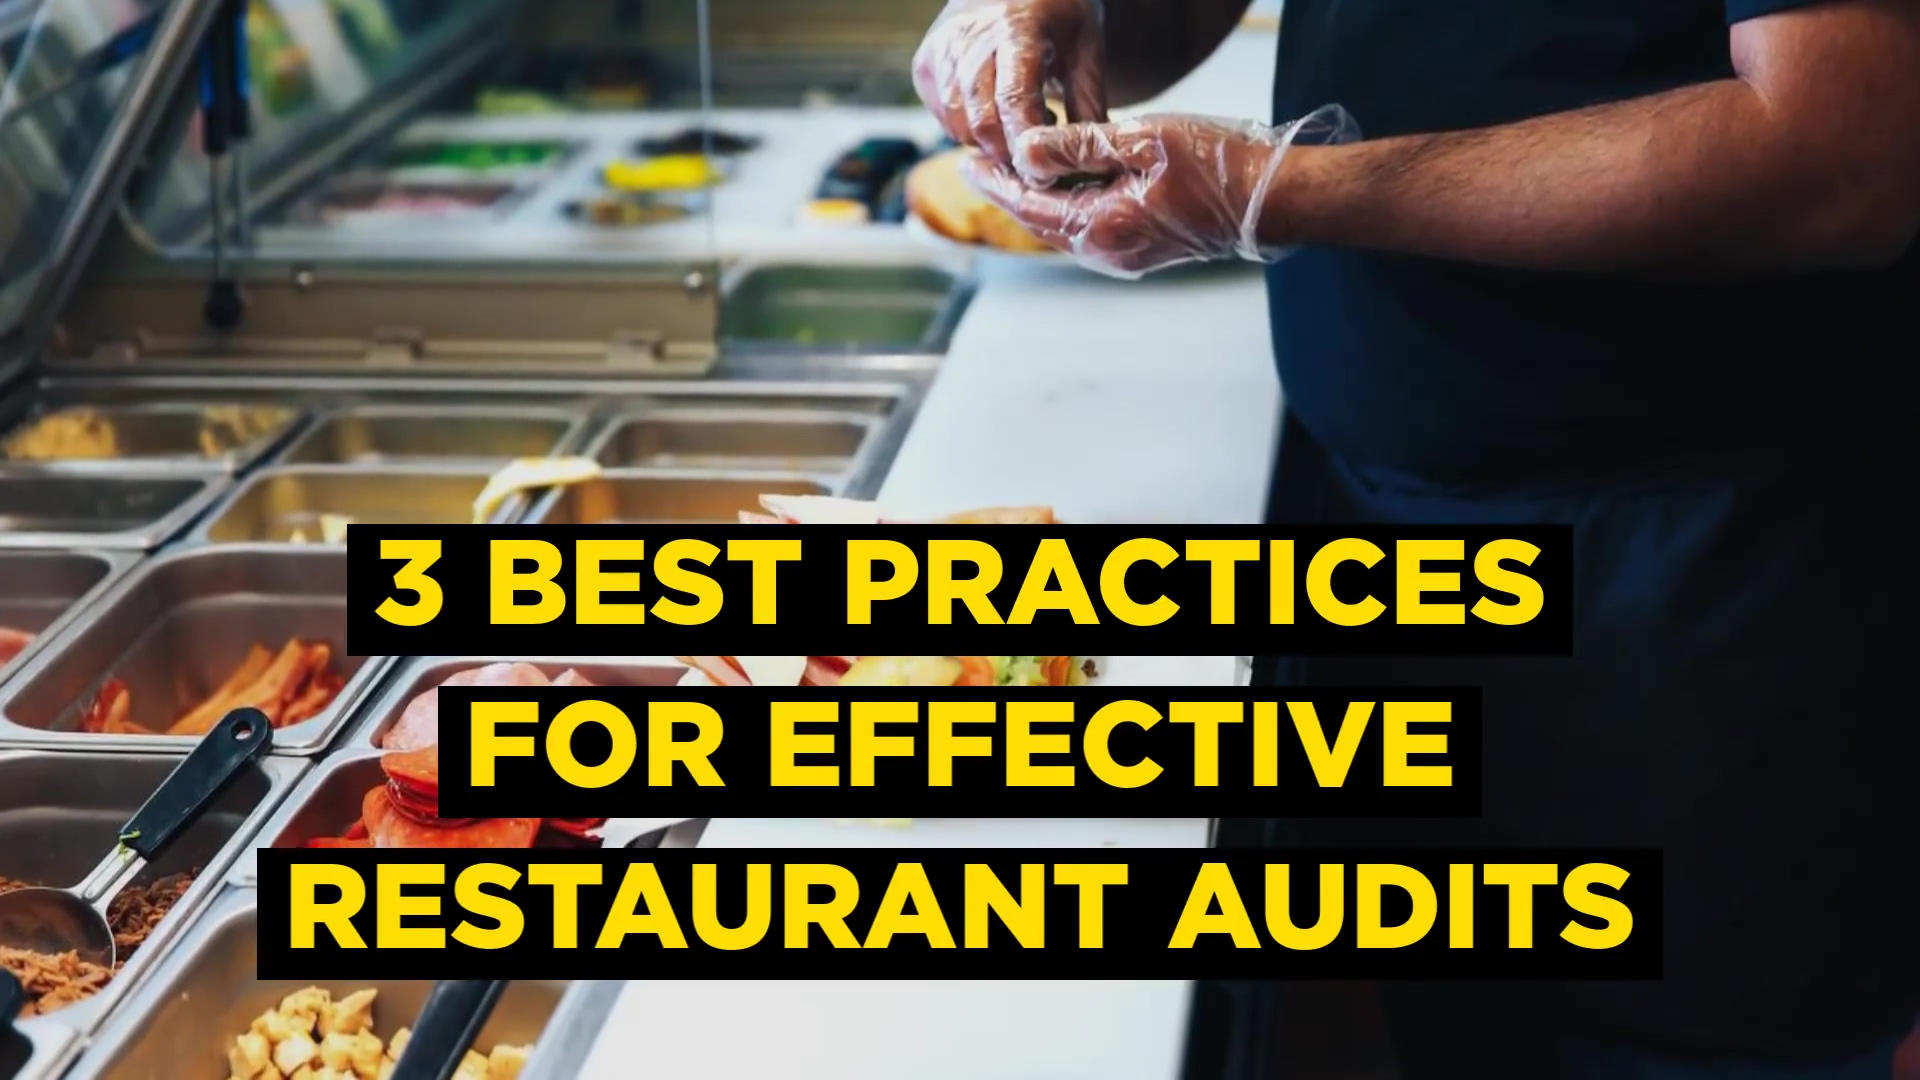 3_BEST_PRACTICES_FOR